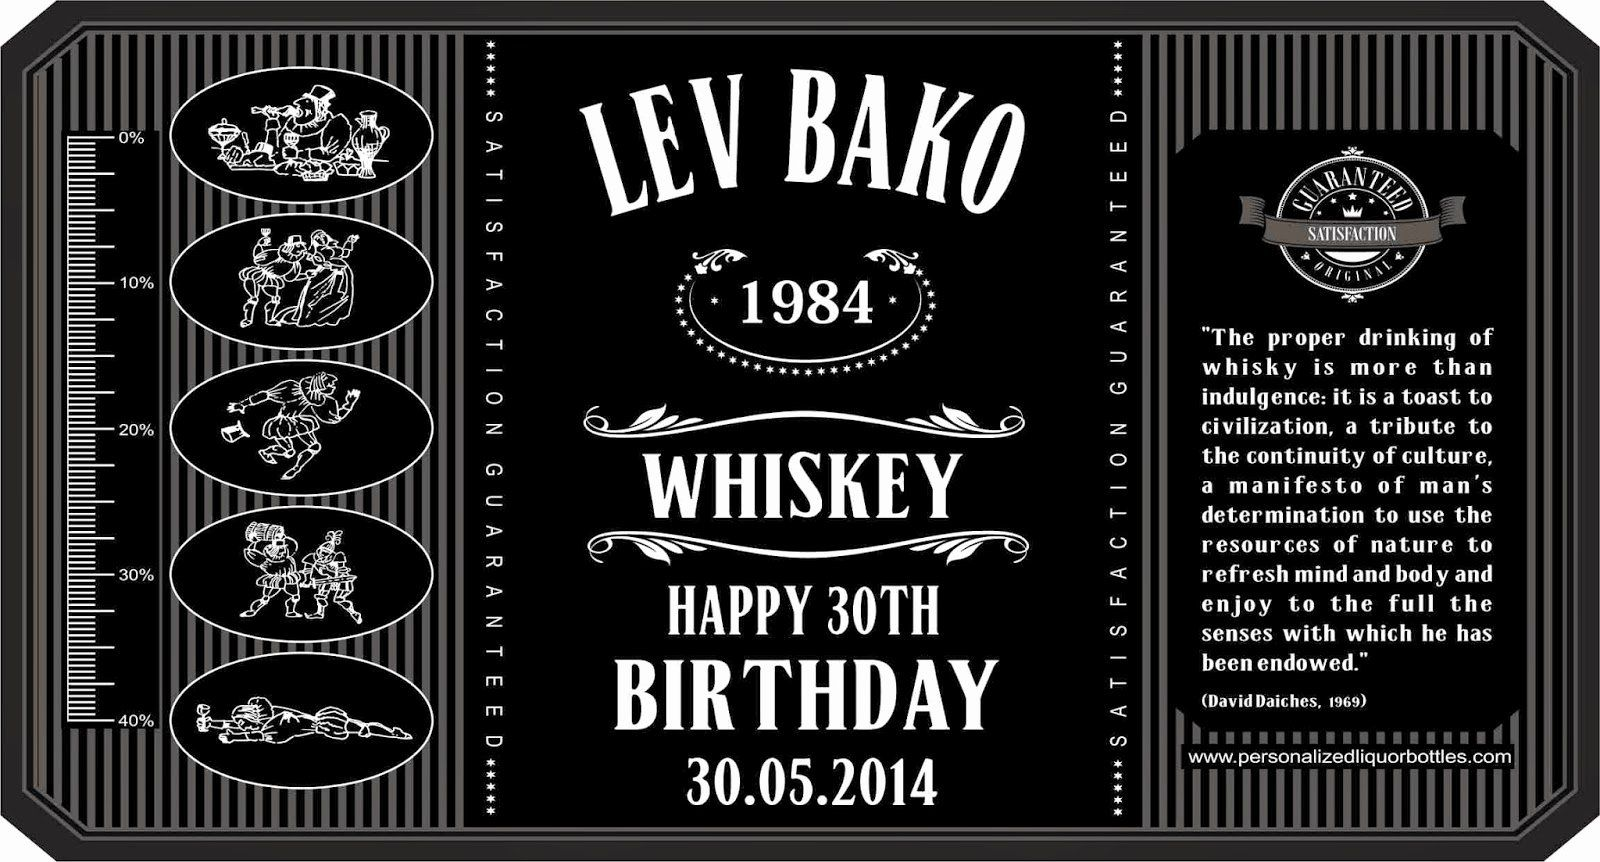 Free Jack Daniels Label Template Best Of Personalized Liquor Bottles Personalized Whiskey Bottles Bottle Label Template Label Templates Liquor Bottle Labels